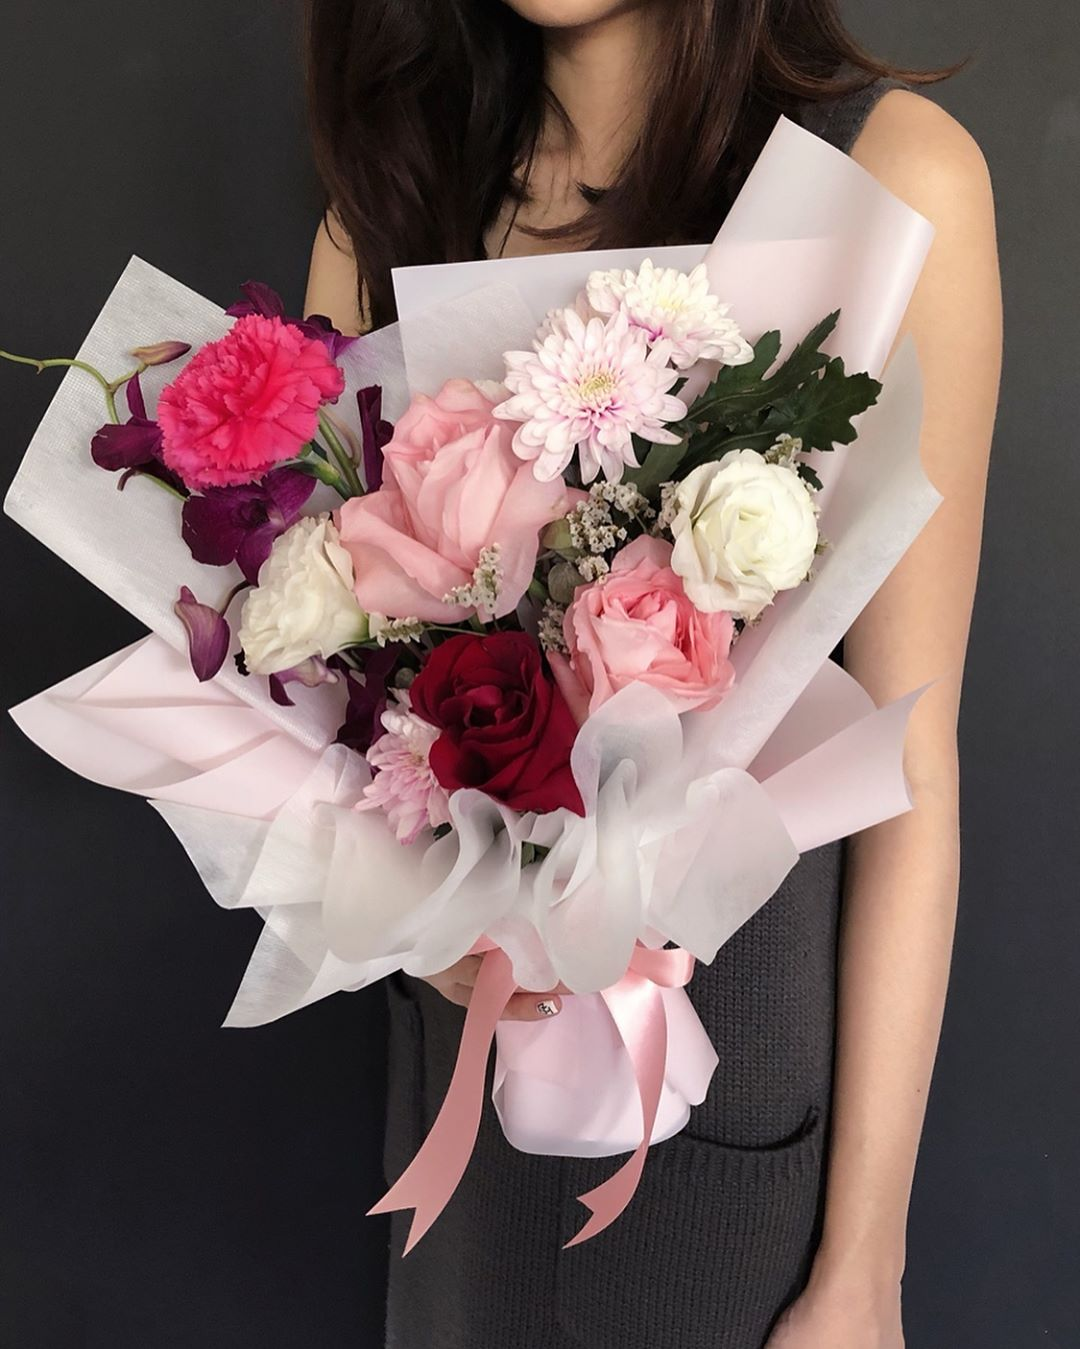 Valentine's Day bouquets under $50 - Fresh roses bouquet